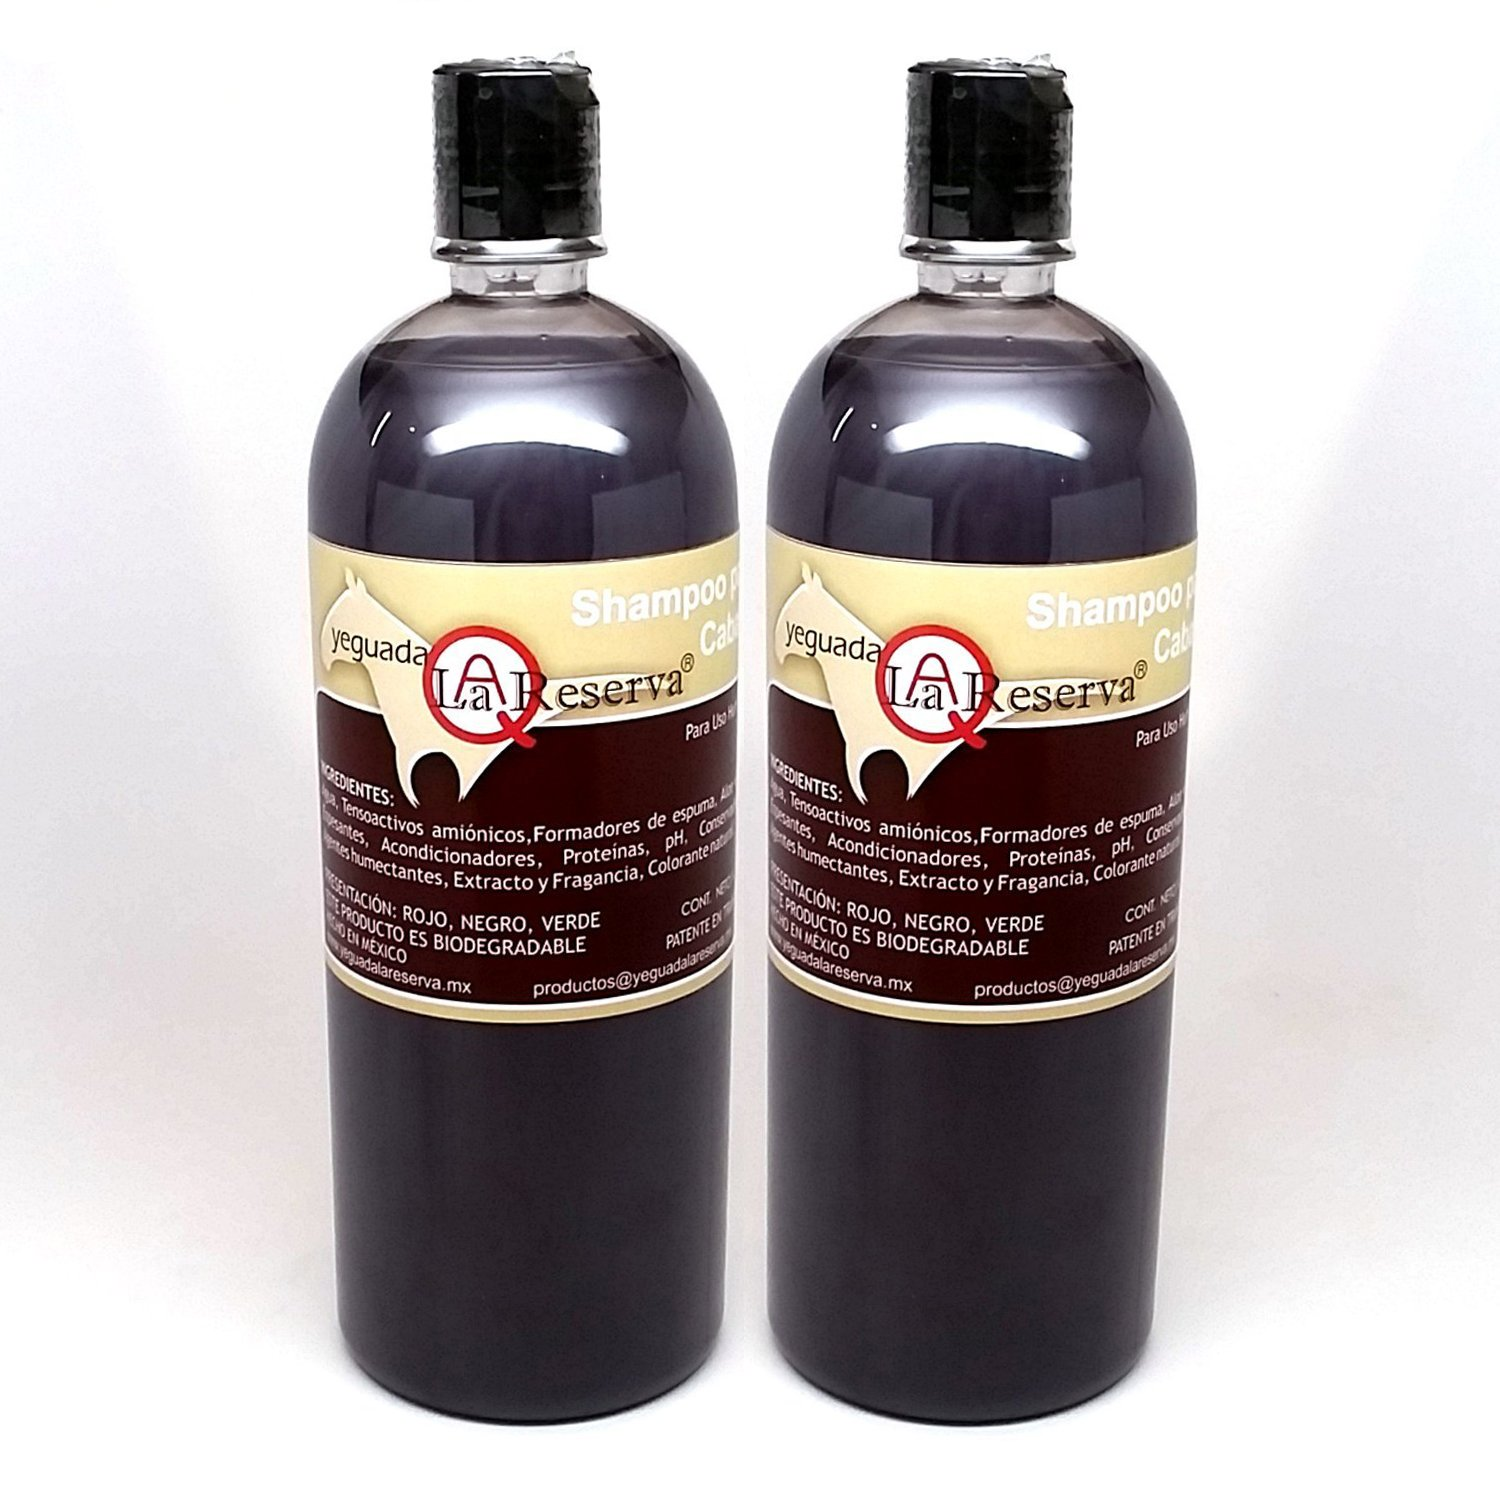 2-PACK YEGUADA LA RESERVA SHAMPOO NEGRO ( 1-LITER BOTTLE ) FOR HAIR LOSS AND HAIR REGROWTH by Yeguada La Resreva